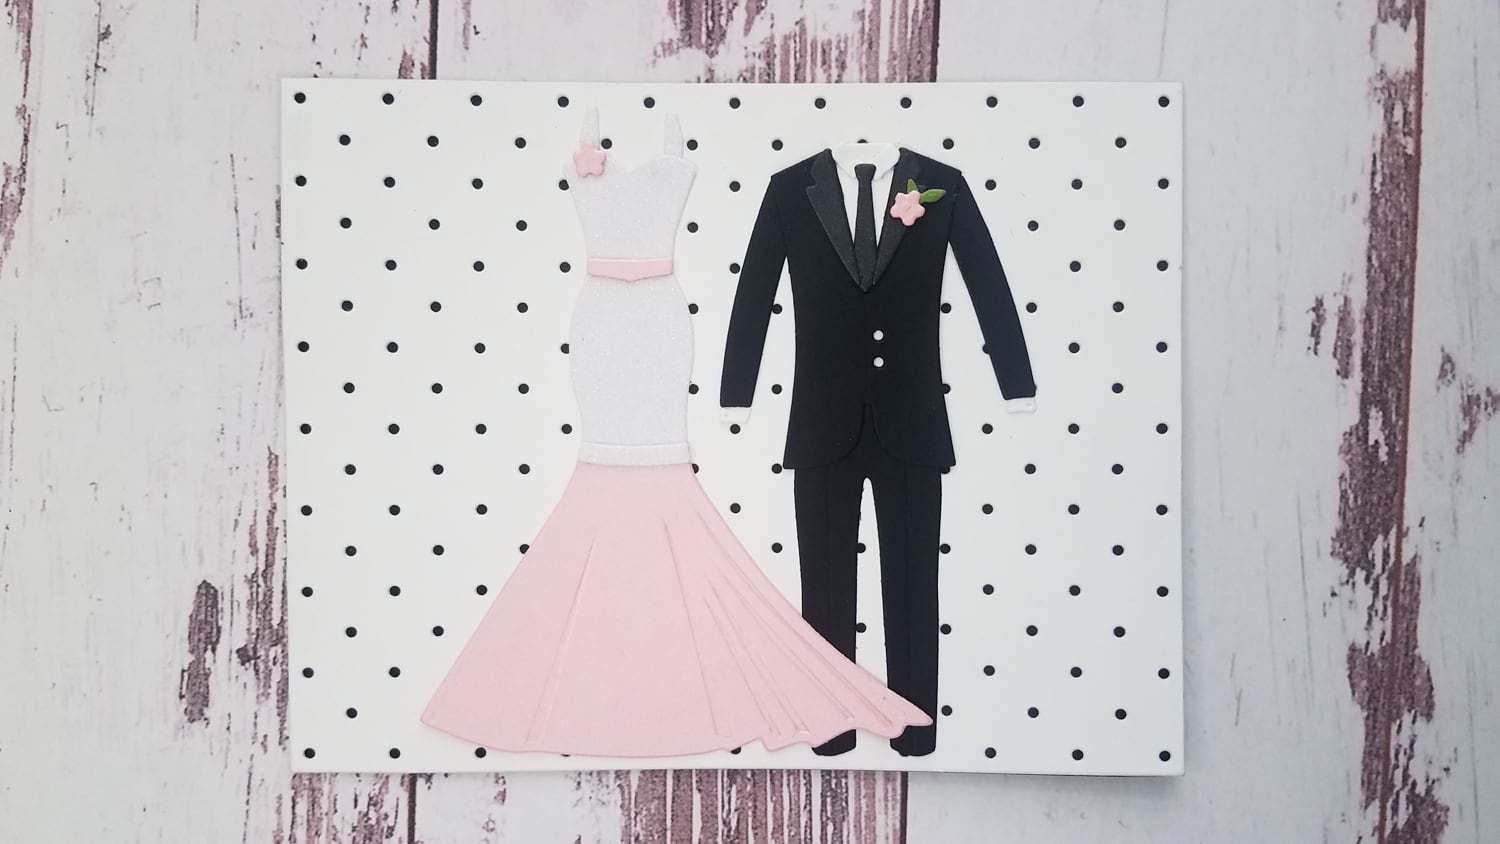 assembled dress and tuxedo for wedding card